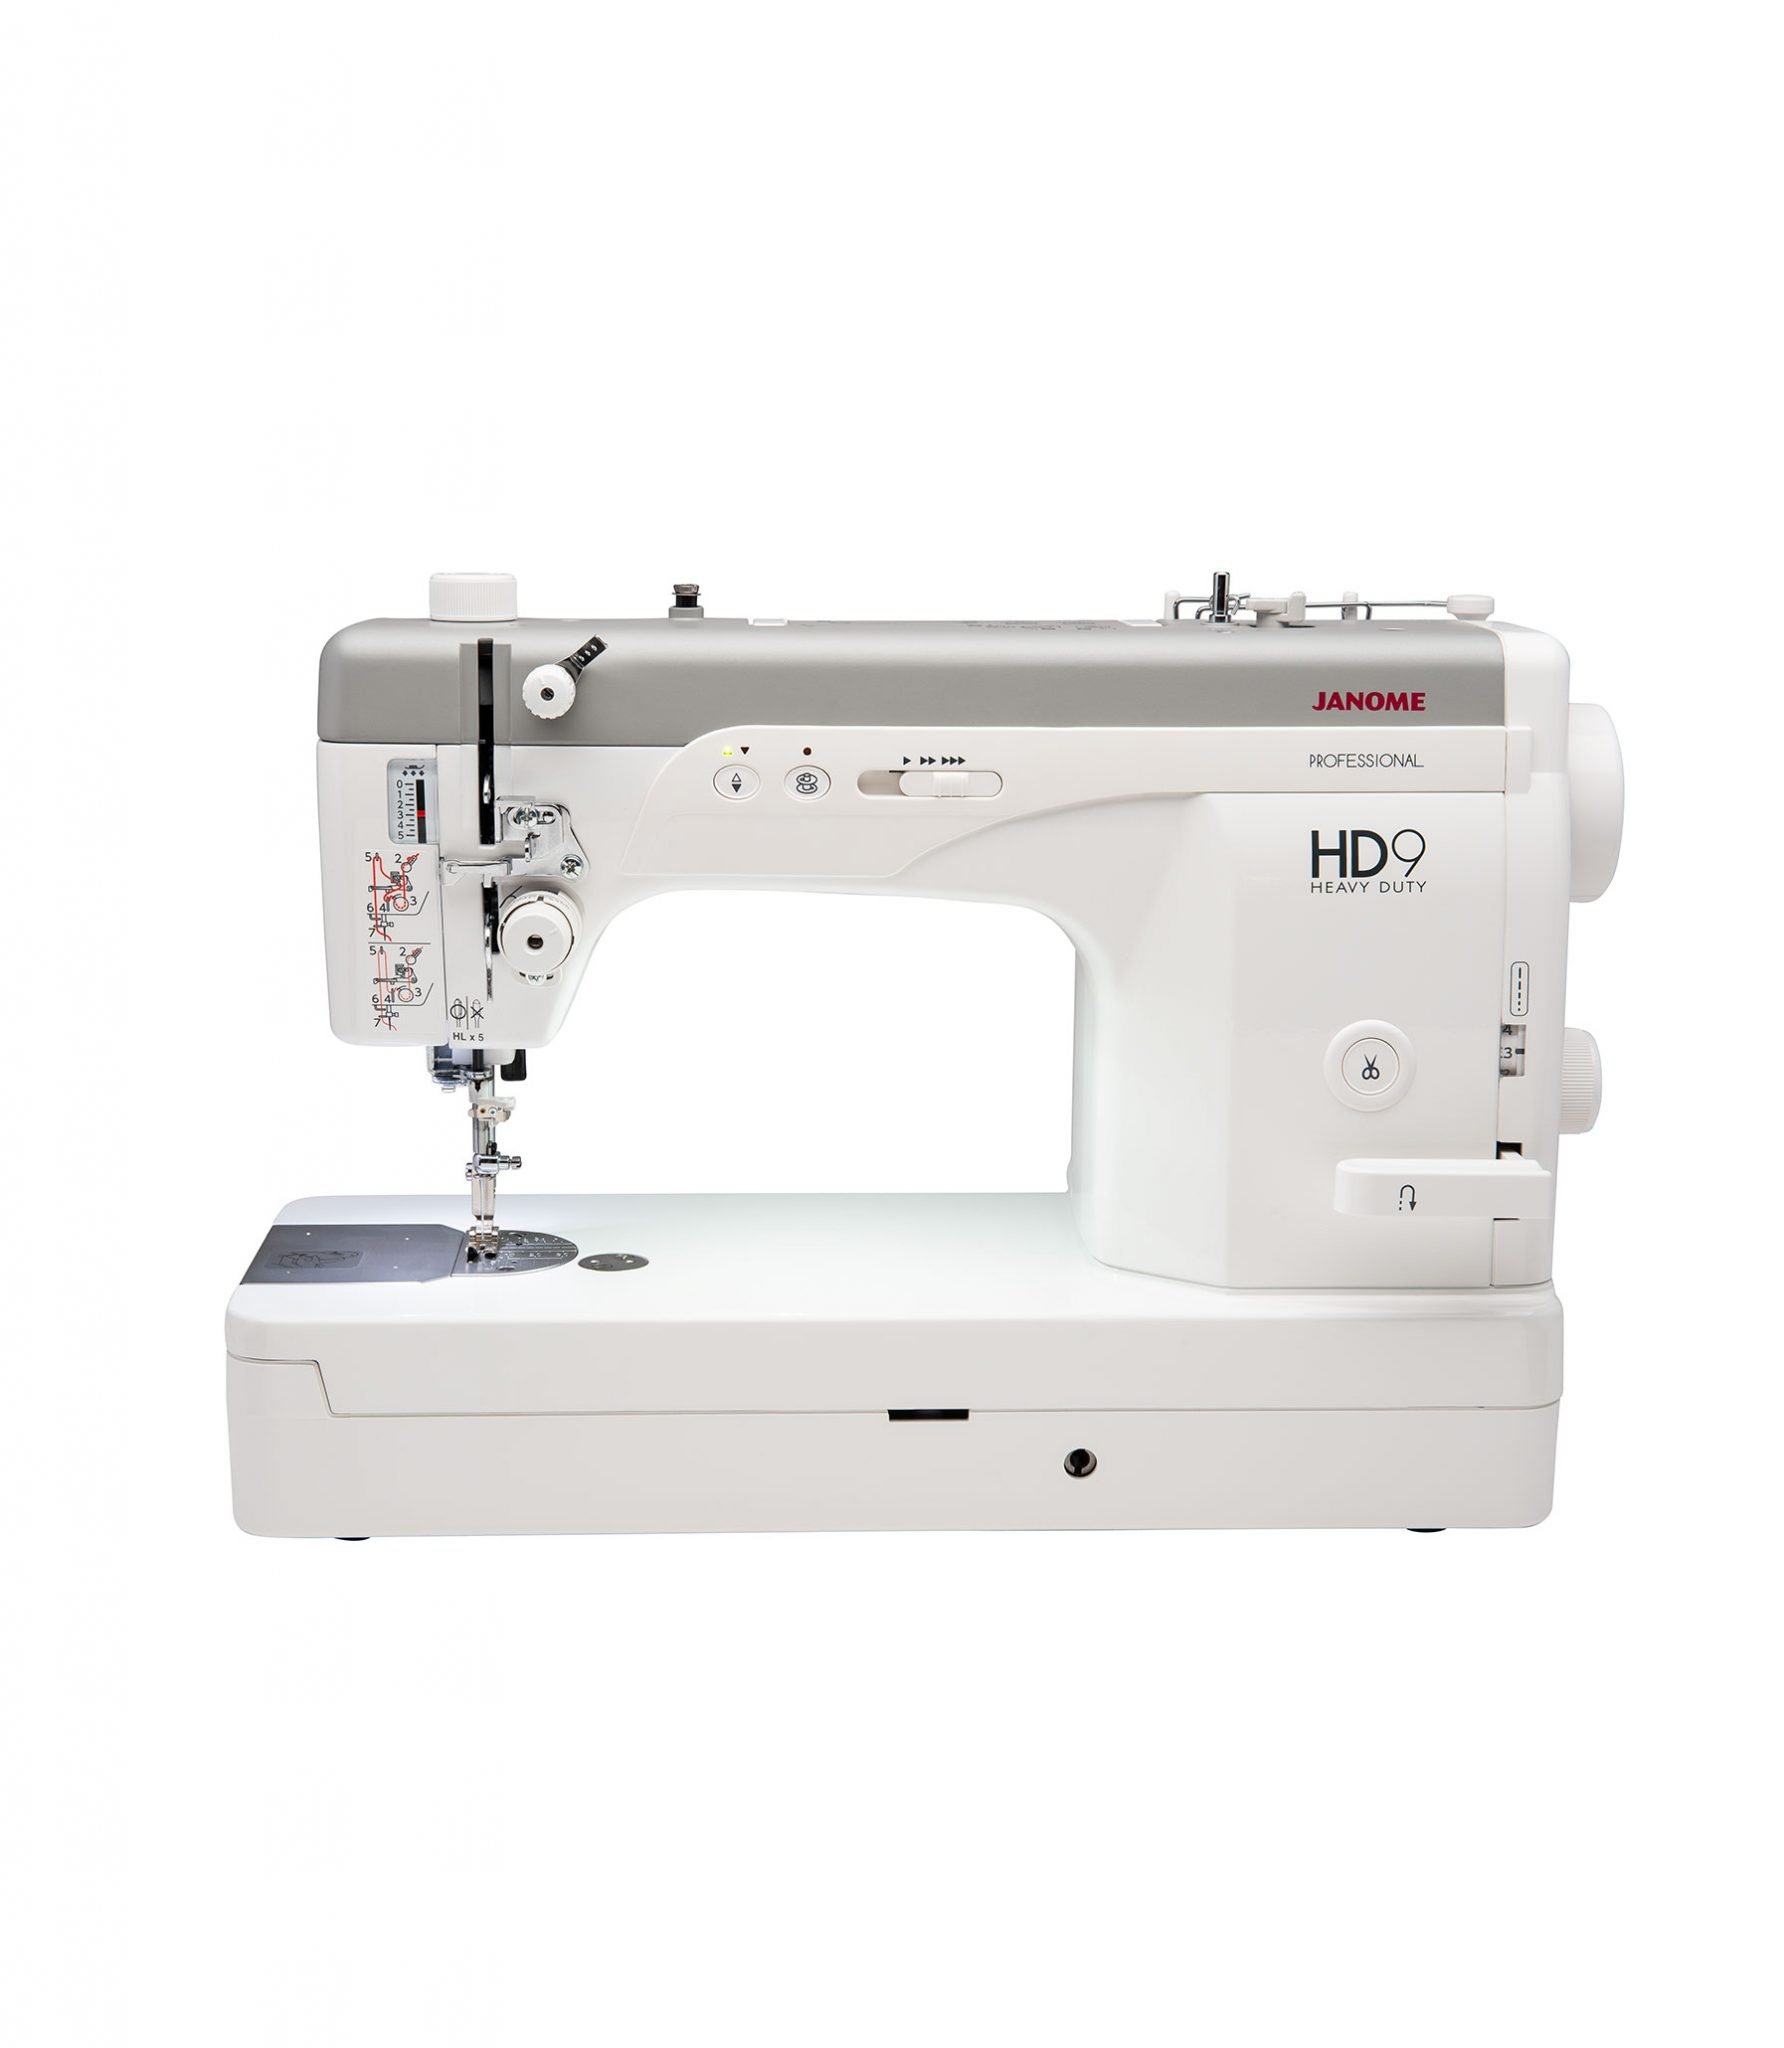 Janome HD9 Professional Quilter Quilting Heavy Duty Machine Flat Bed Mechanical